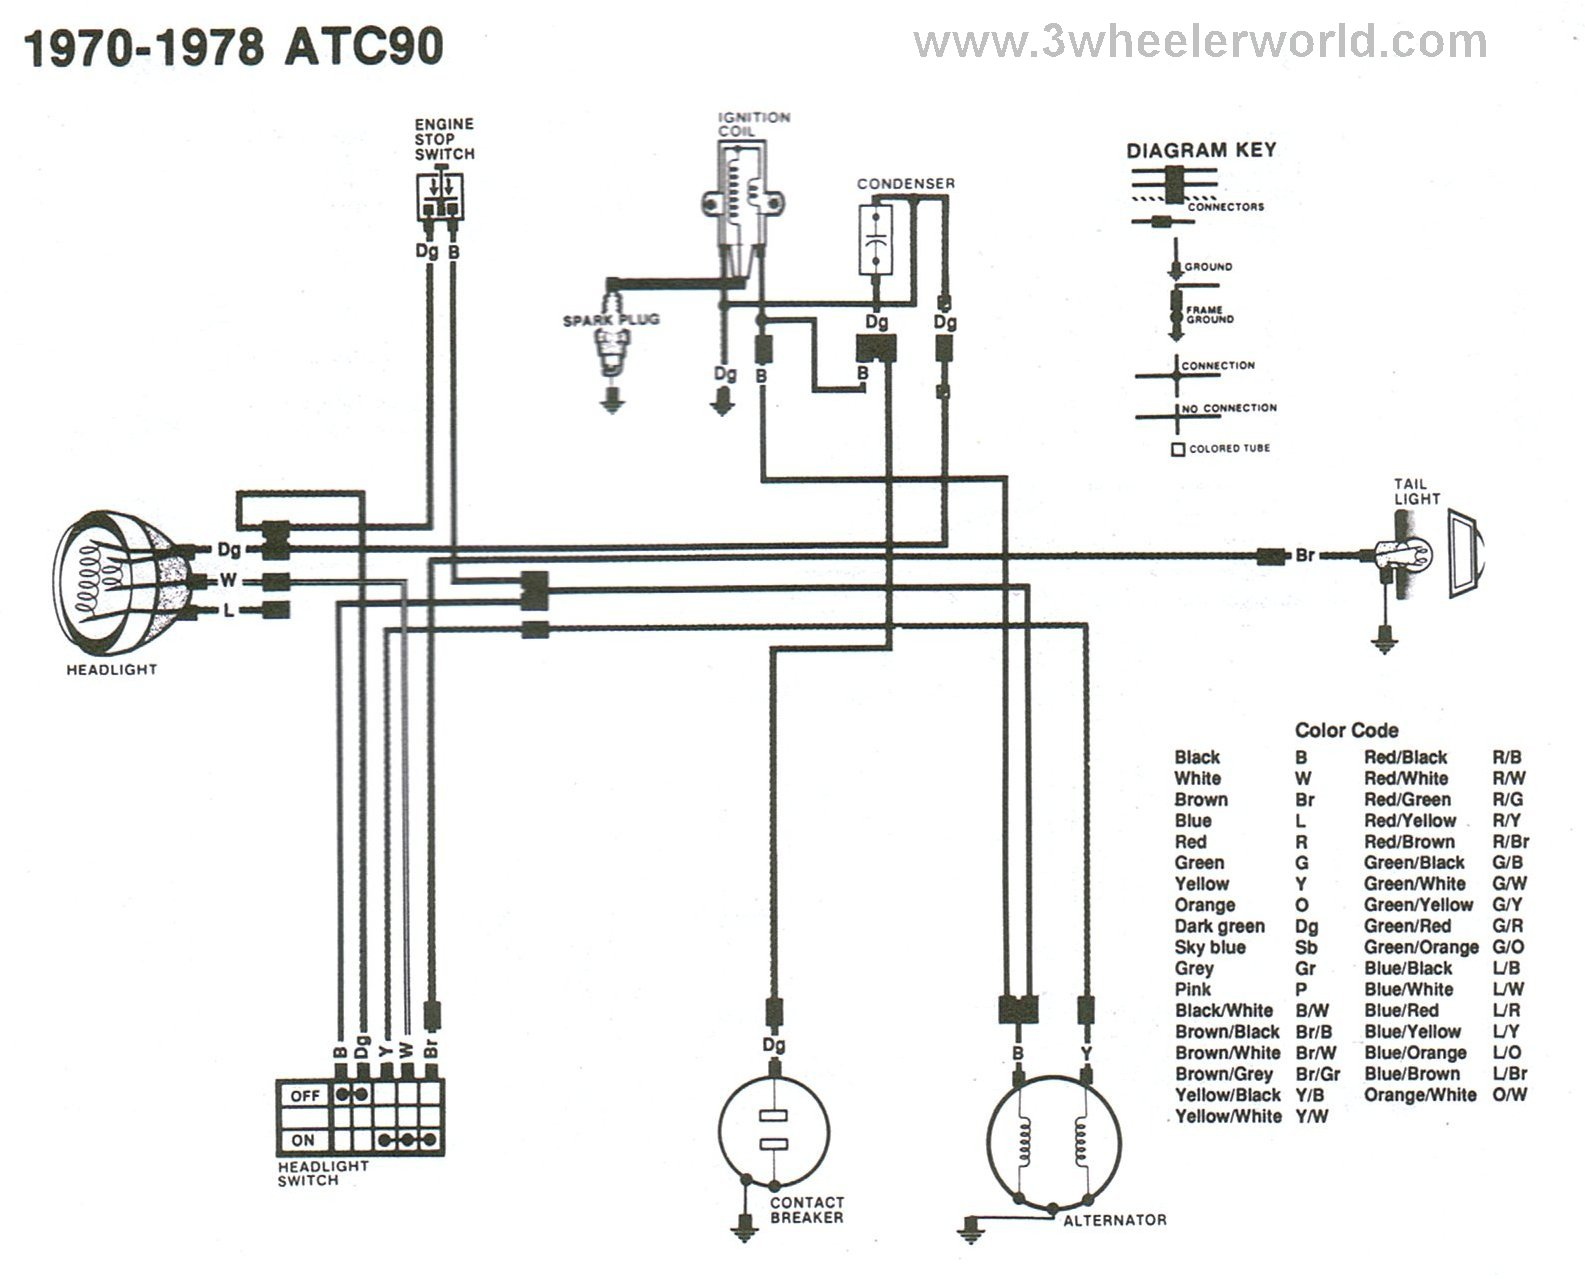 [DIAGRAM_4PO]  3 WHeeLeR WoRLD-Tech Help Honda Wiring Diagrams | Honda 4 Wheeler Wiring Schematic |  | 3WHeeLeR WoRLD